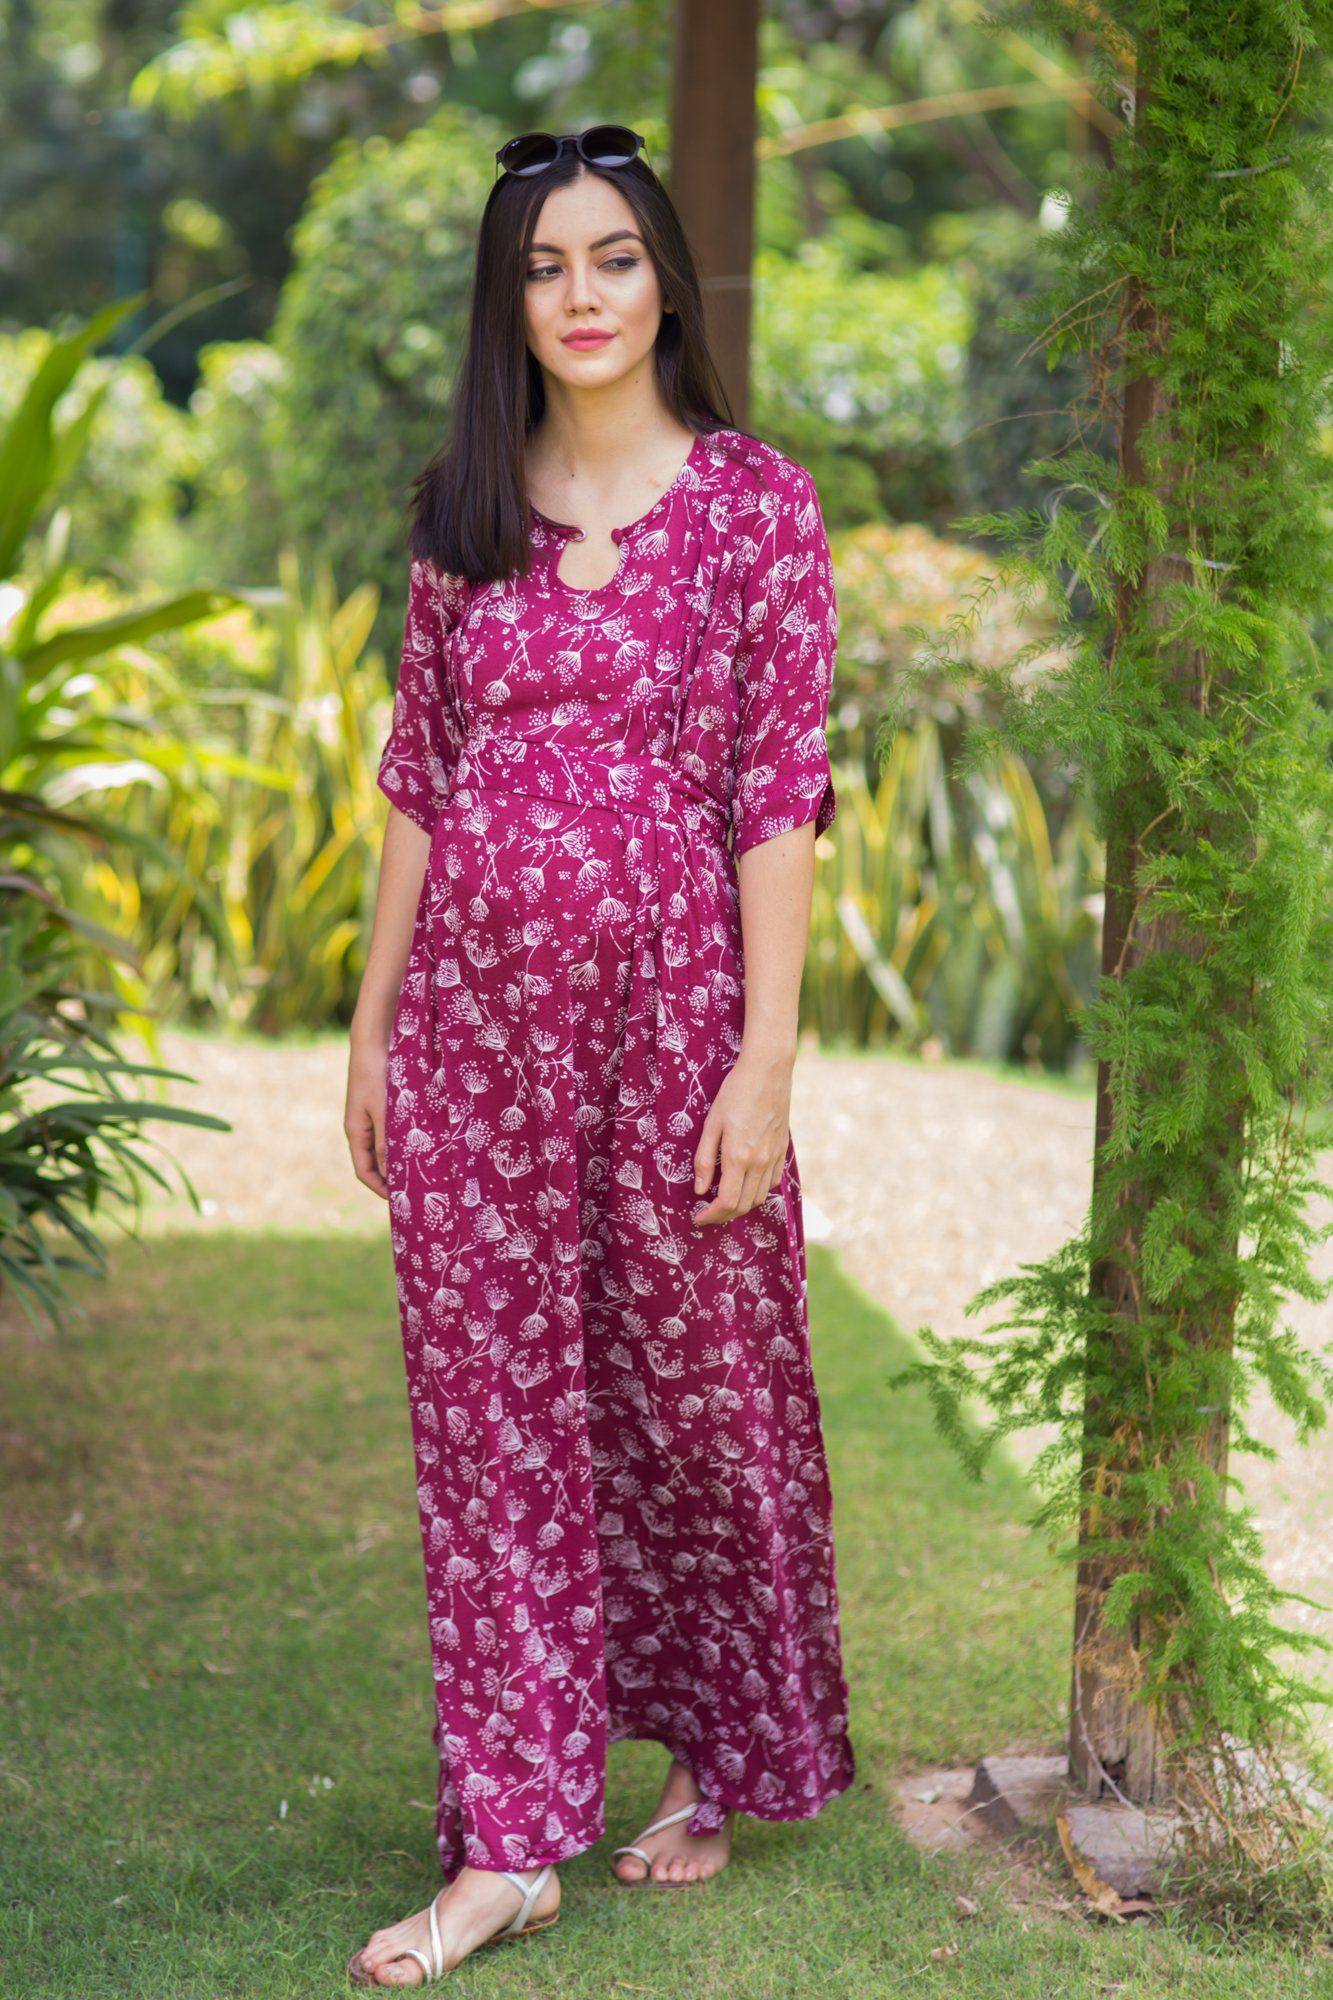 Burgandy Moss Side Slit Concealed Zips Maternity & Feeding Dress - MOMZJOY.COM